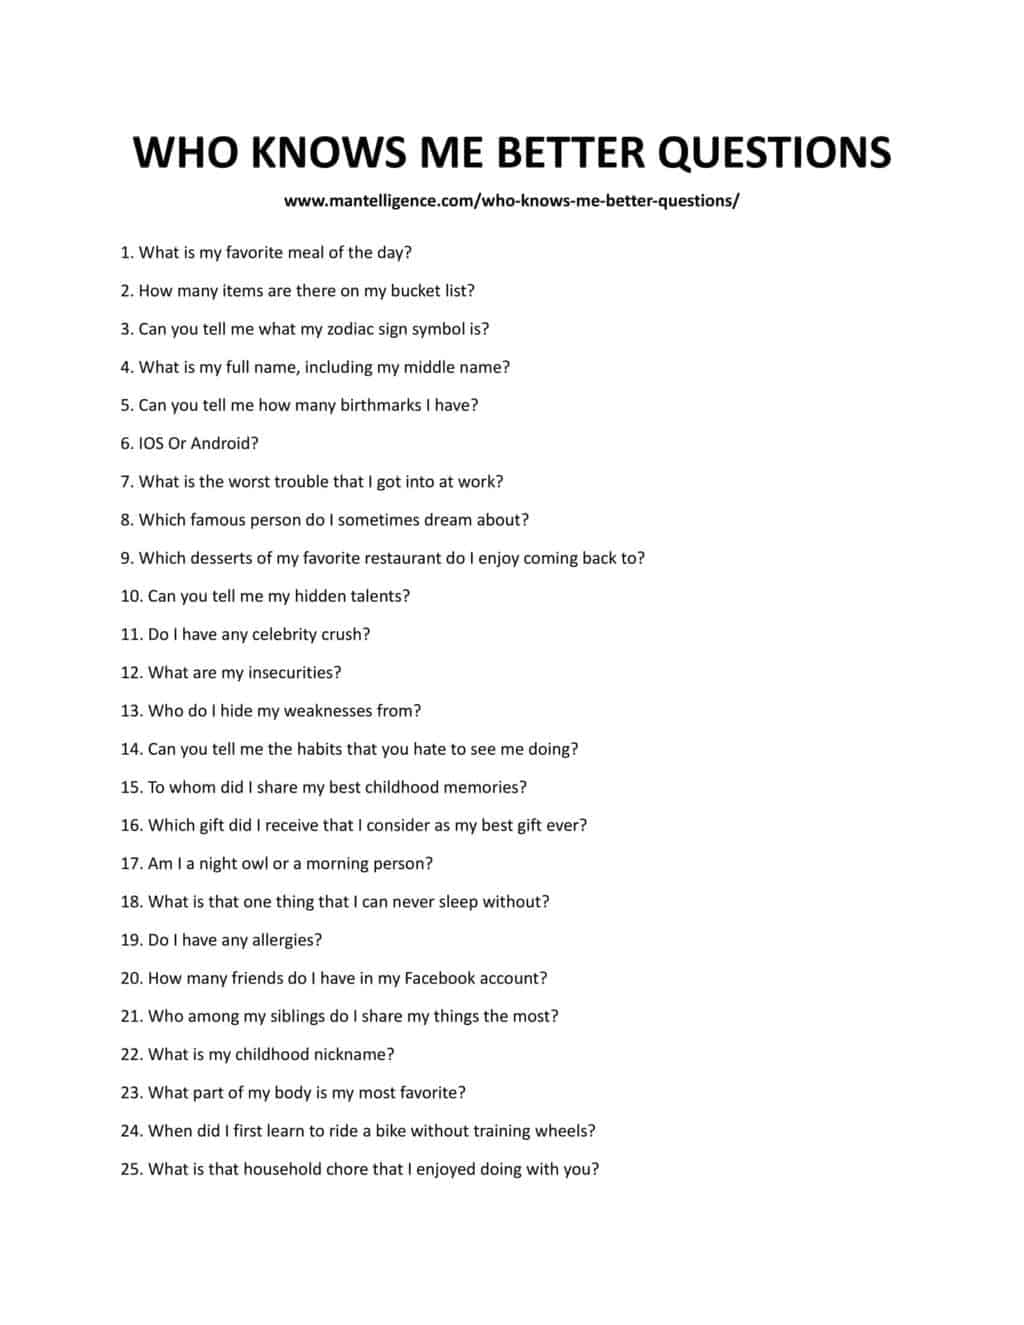 Downloadable and Printable list of Who Knows Me Better Questions